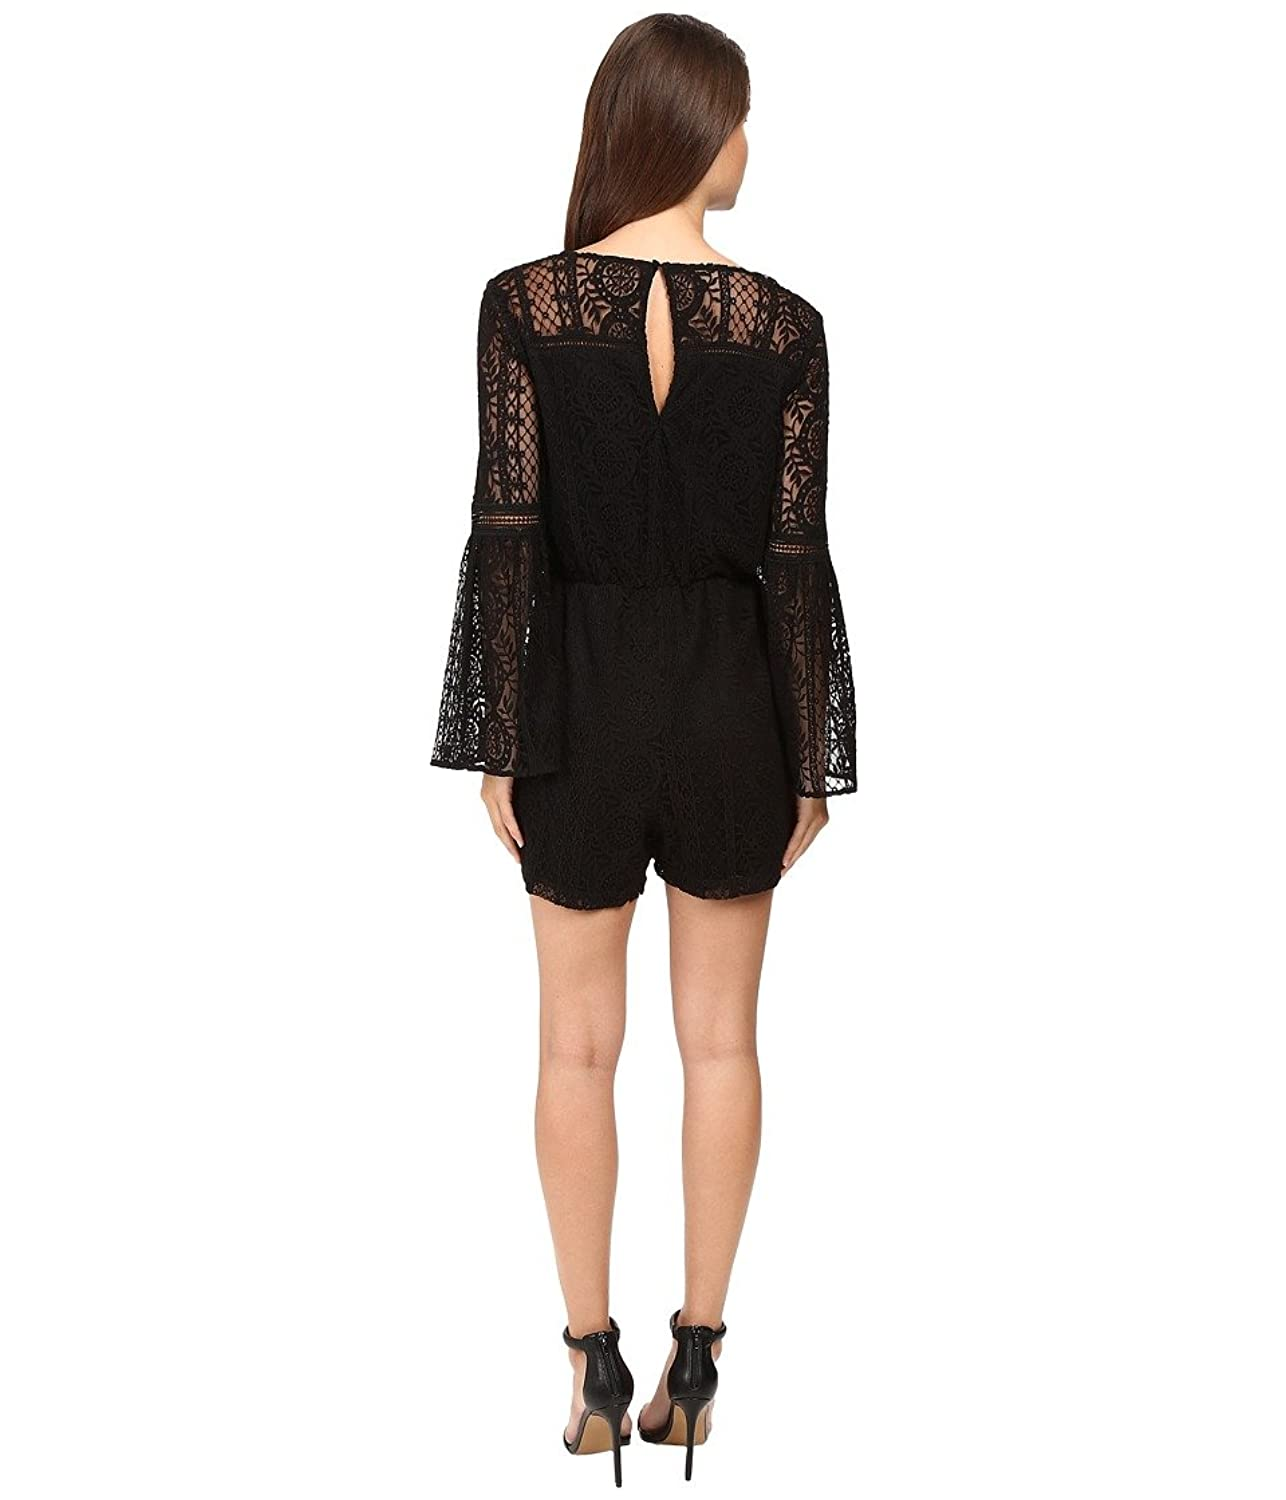 Adelyn Rae Womens Woven Lace Romper